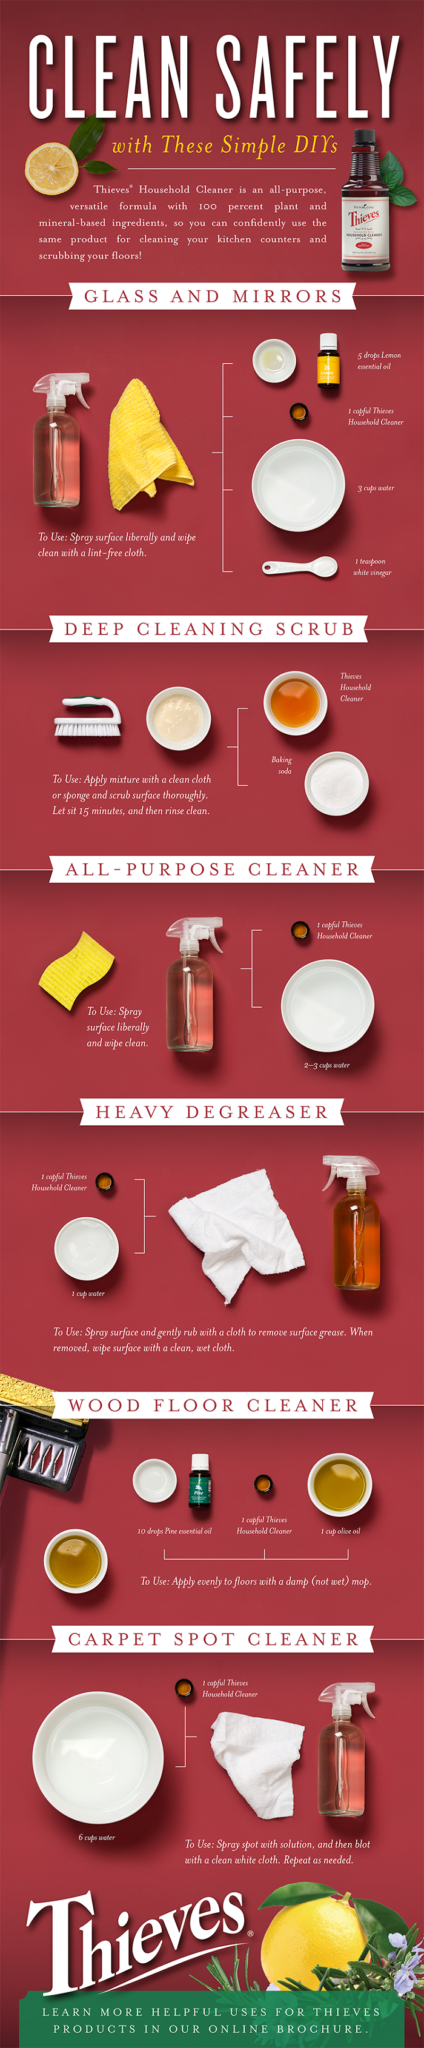 Thieves Household Cleaner from Young Living Infographic